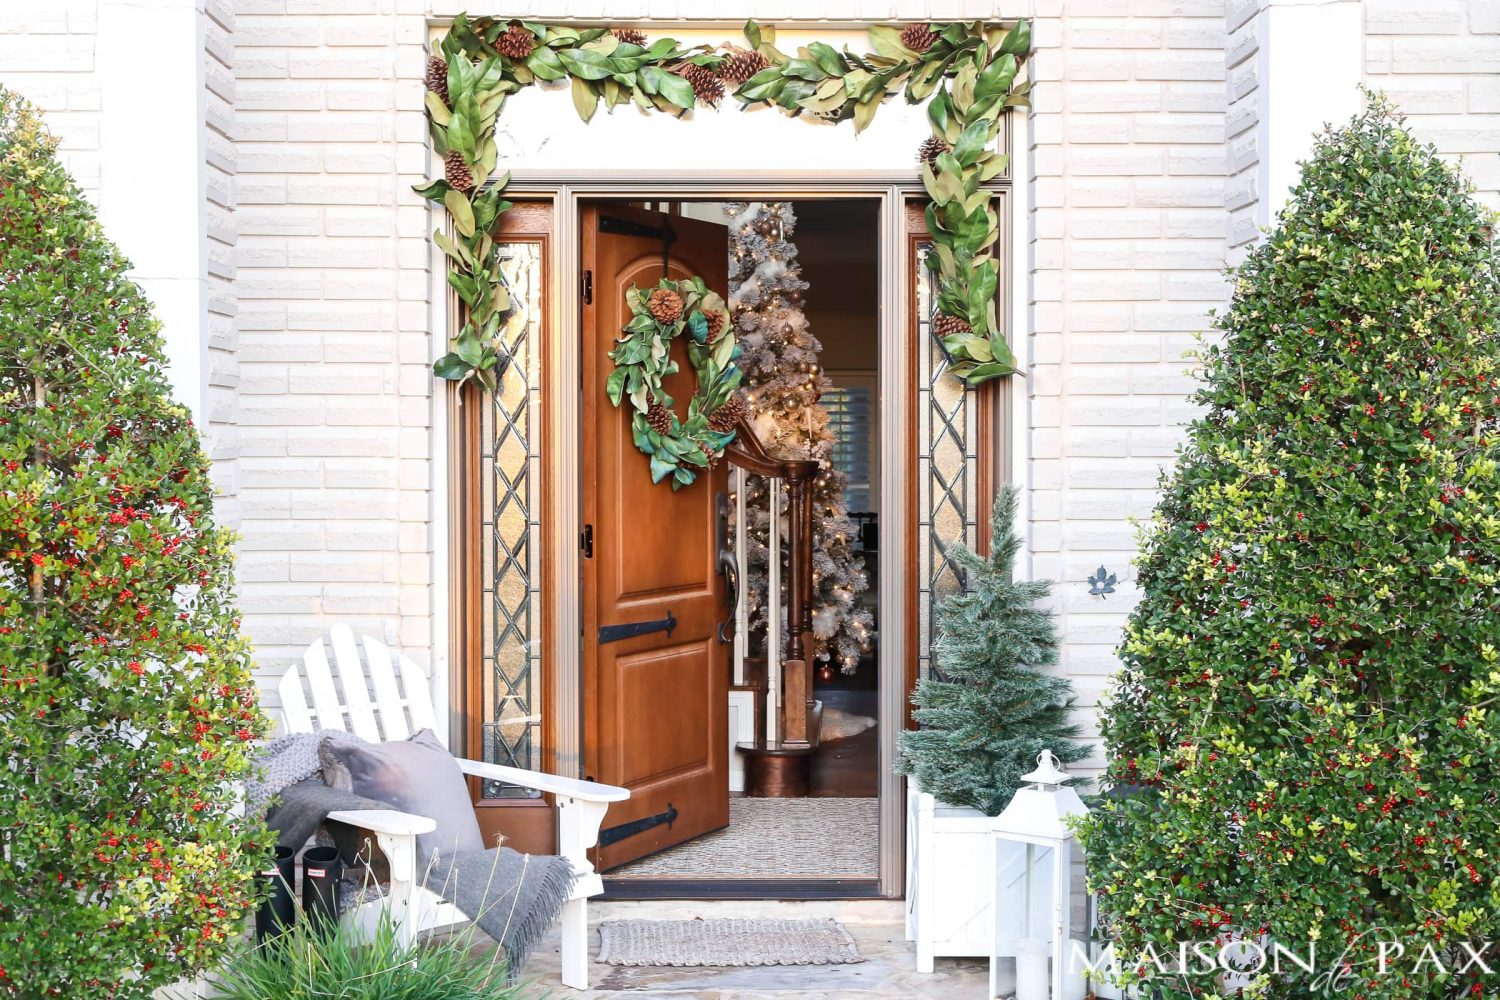 southern style winter porch magnolia wreath and garland adirondack chair cozy accents - Decorating Adirondack Chairs For Christmas